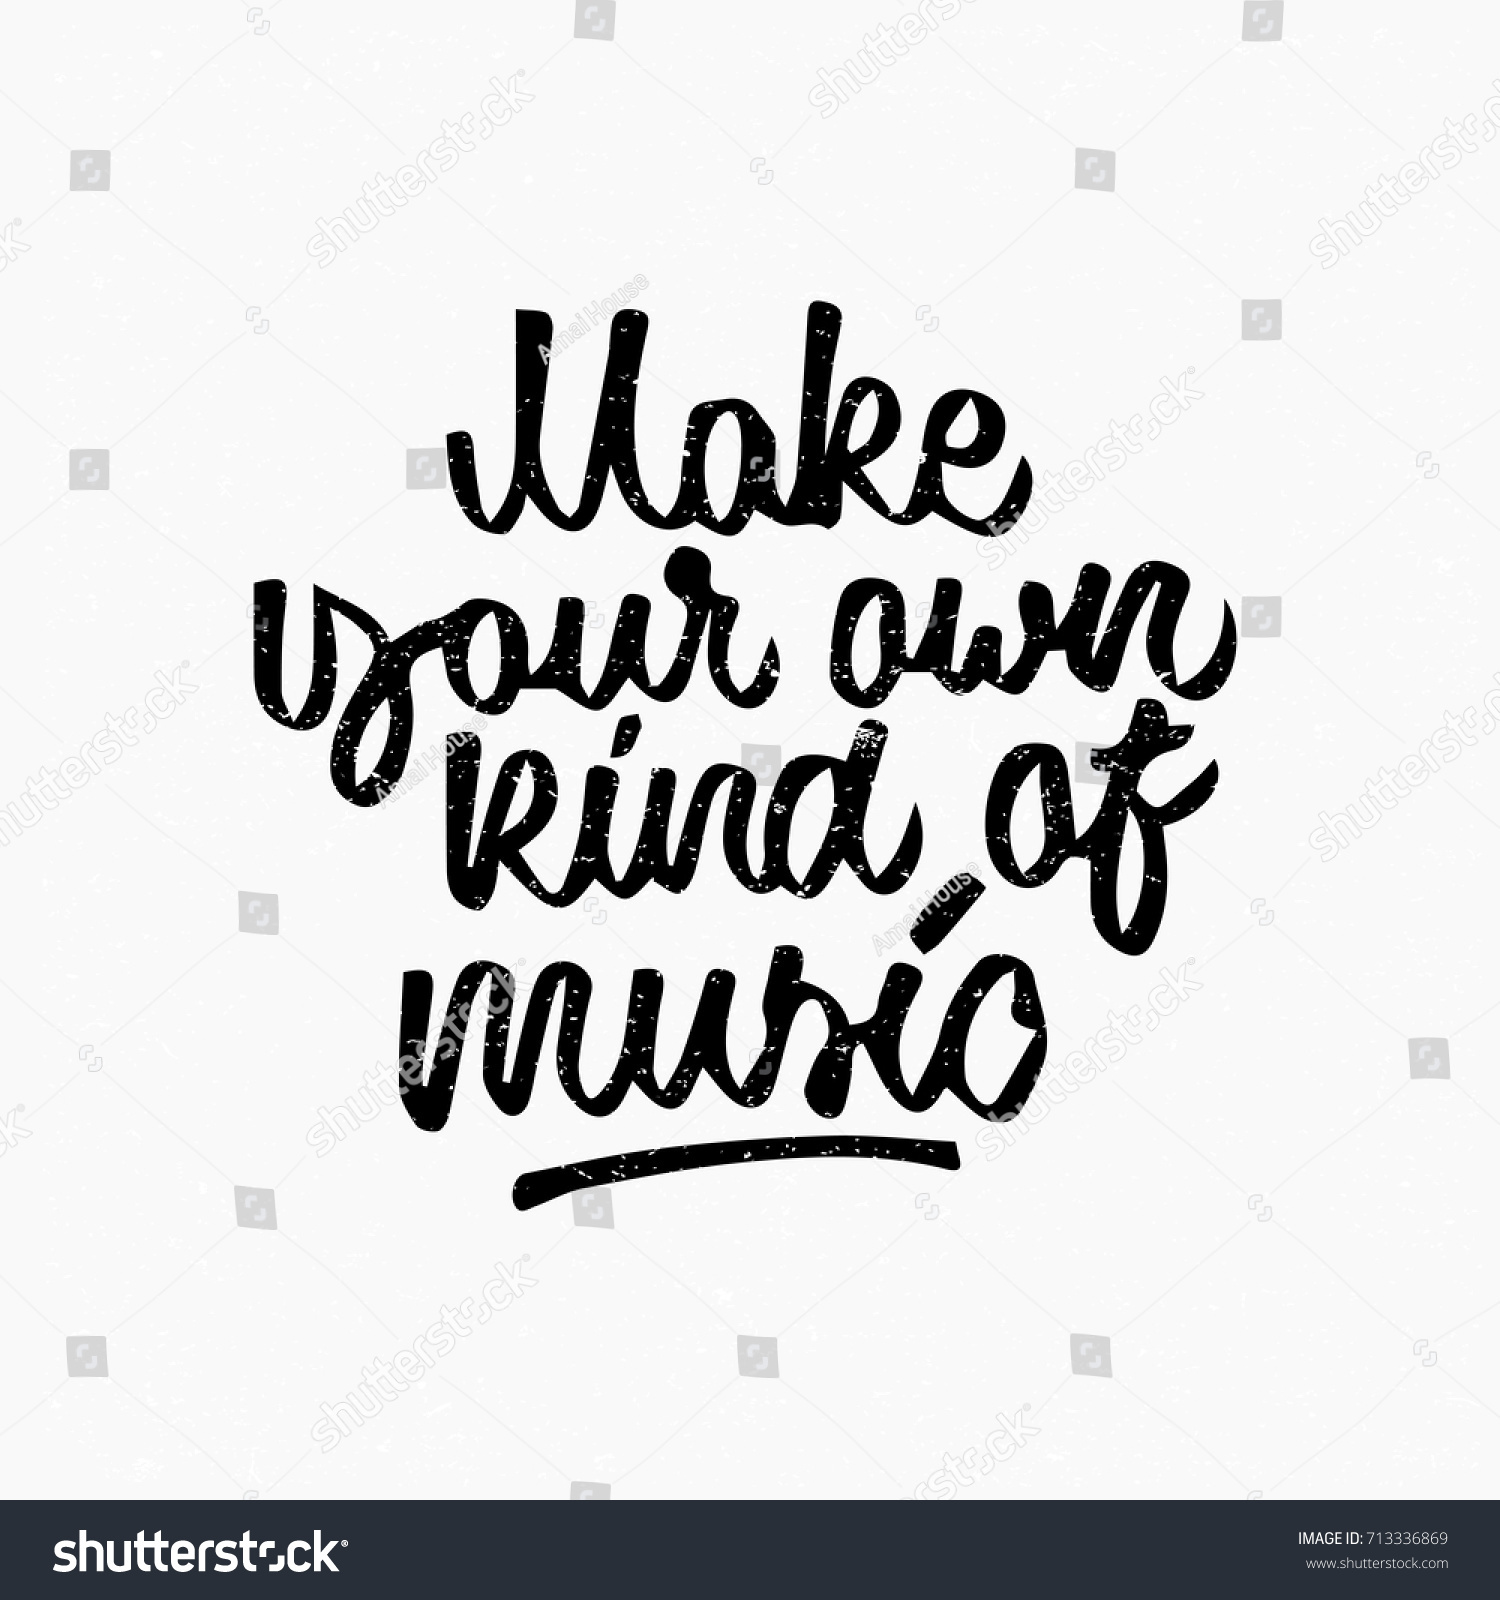 Make Your Own Quotes: Make Your Own Kind Music Quote Stock Vector 713336869